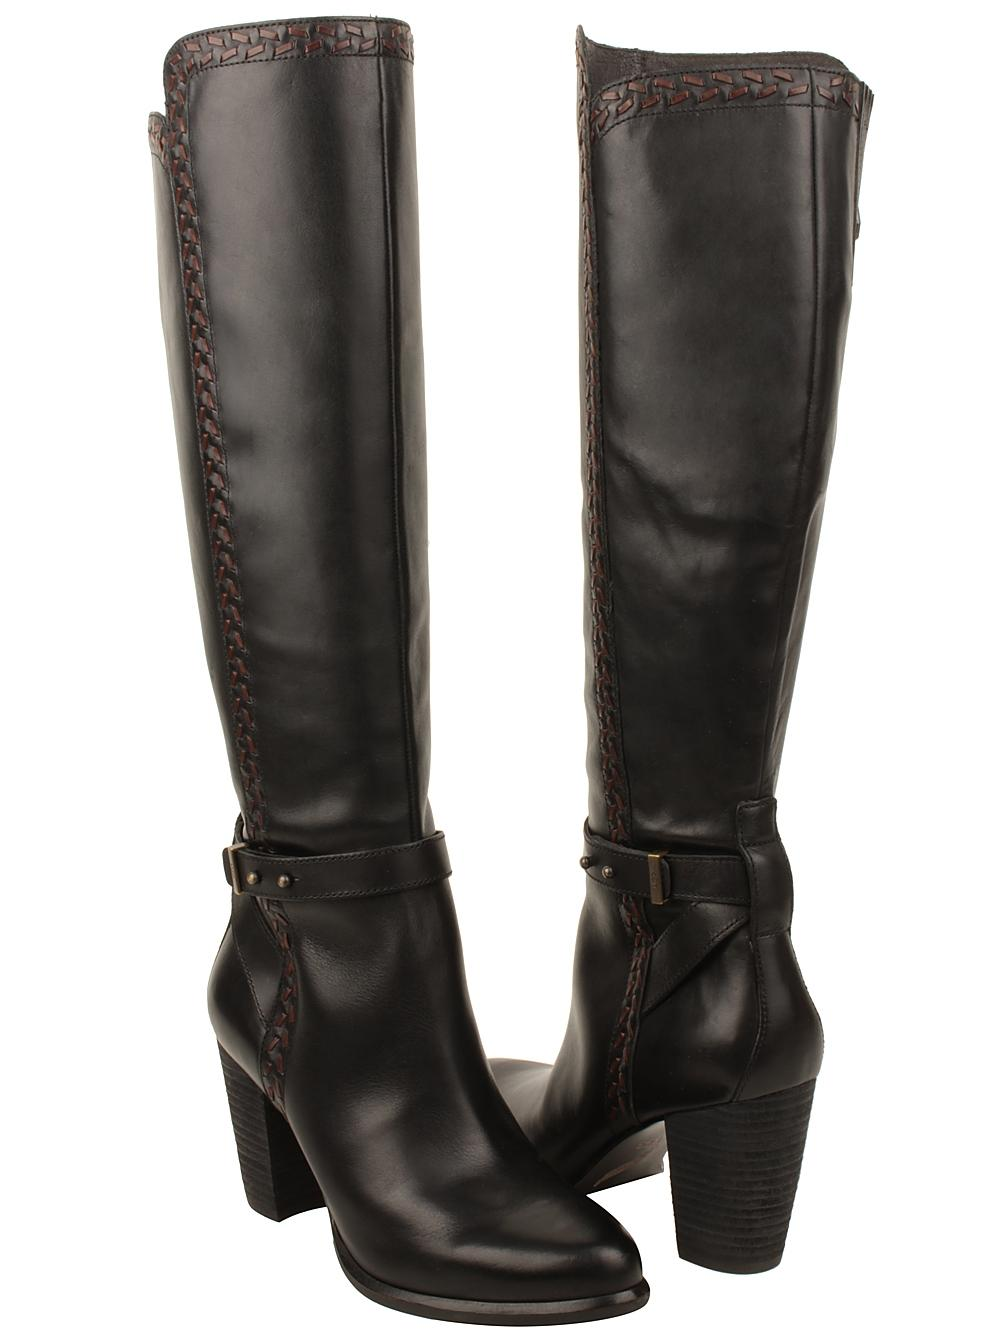 UGG Australia Claudine Tall Stacked Heel Leather black Boots ...